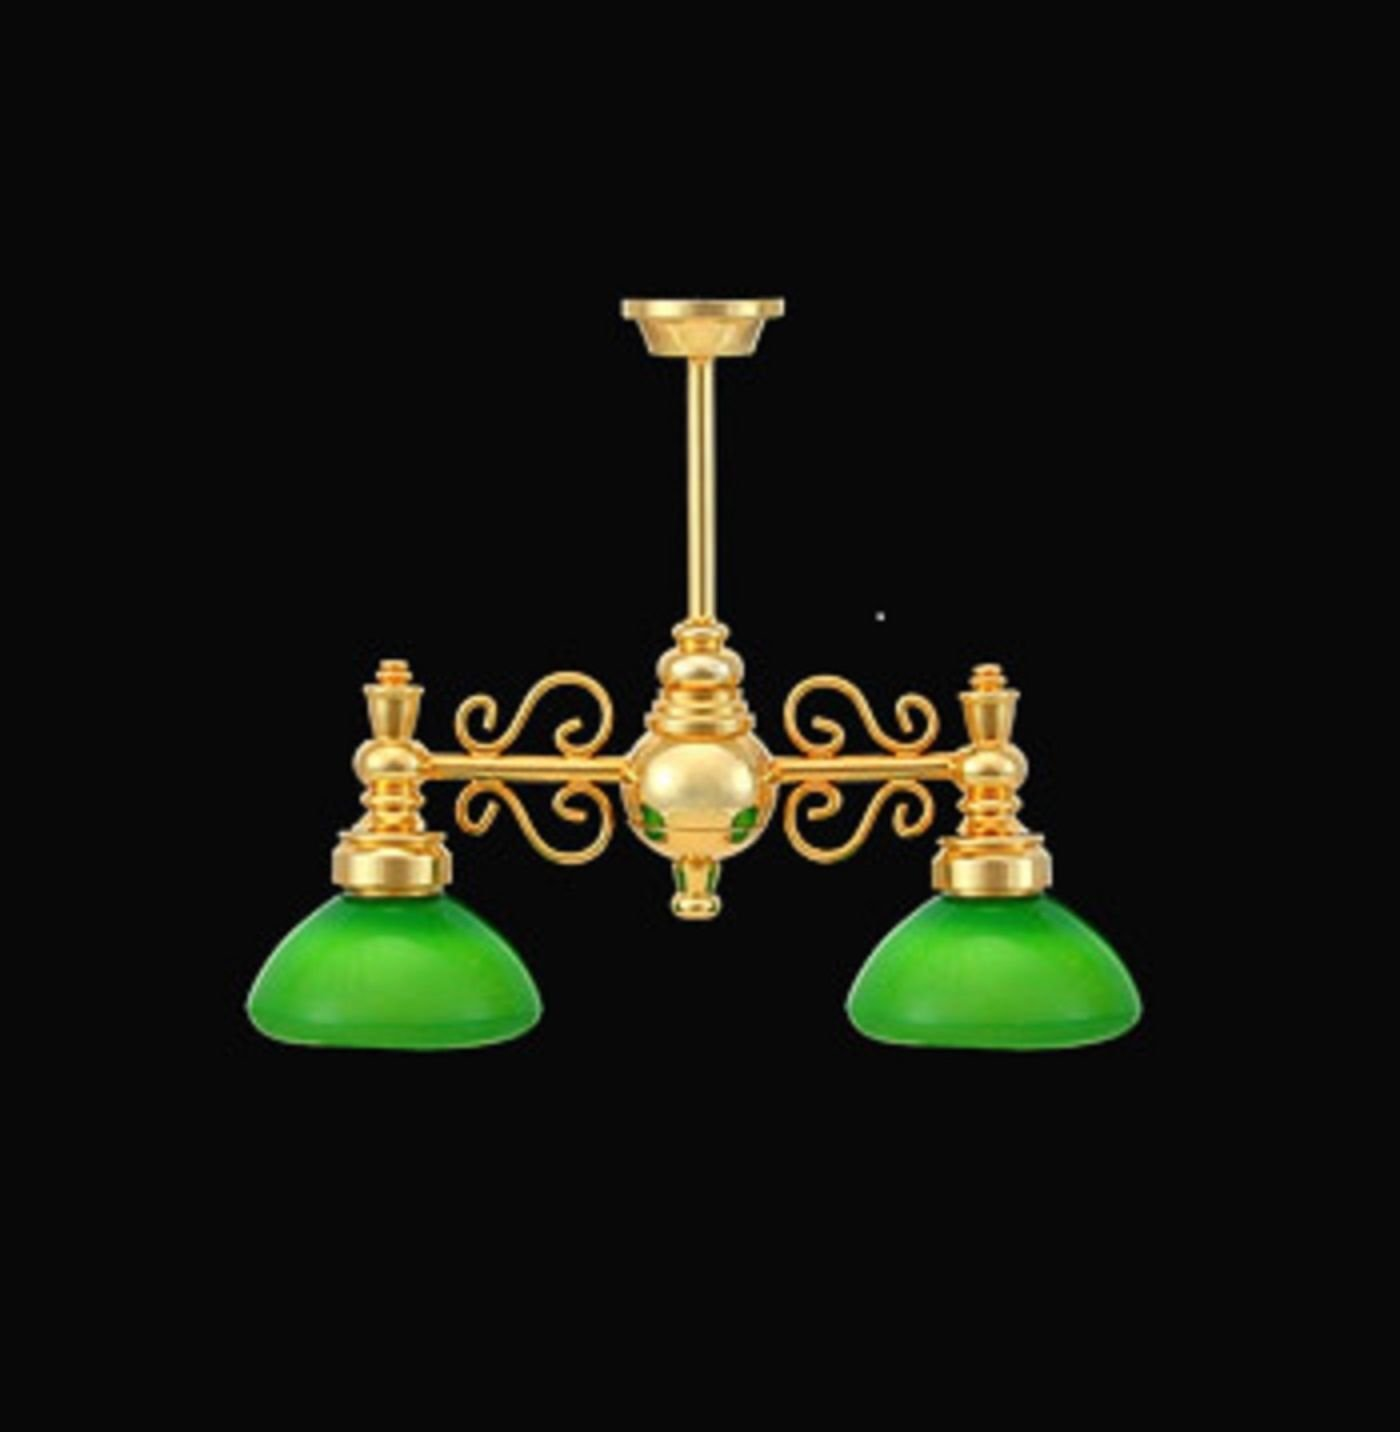 Melody Jane Dollhouse Double Billiard Light Brass Green Shades 12V Electric Lighting by Melody (Image #1)